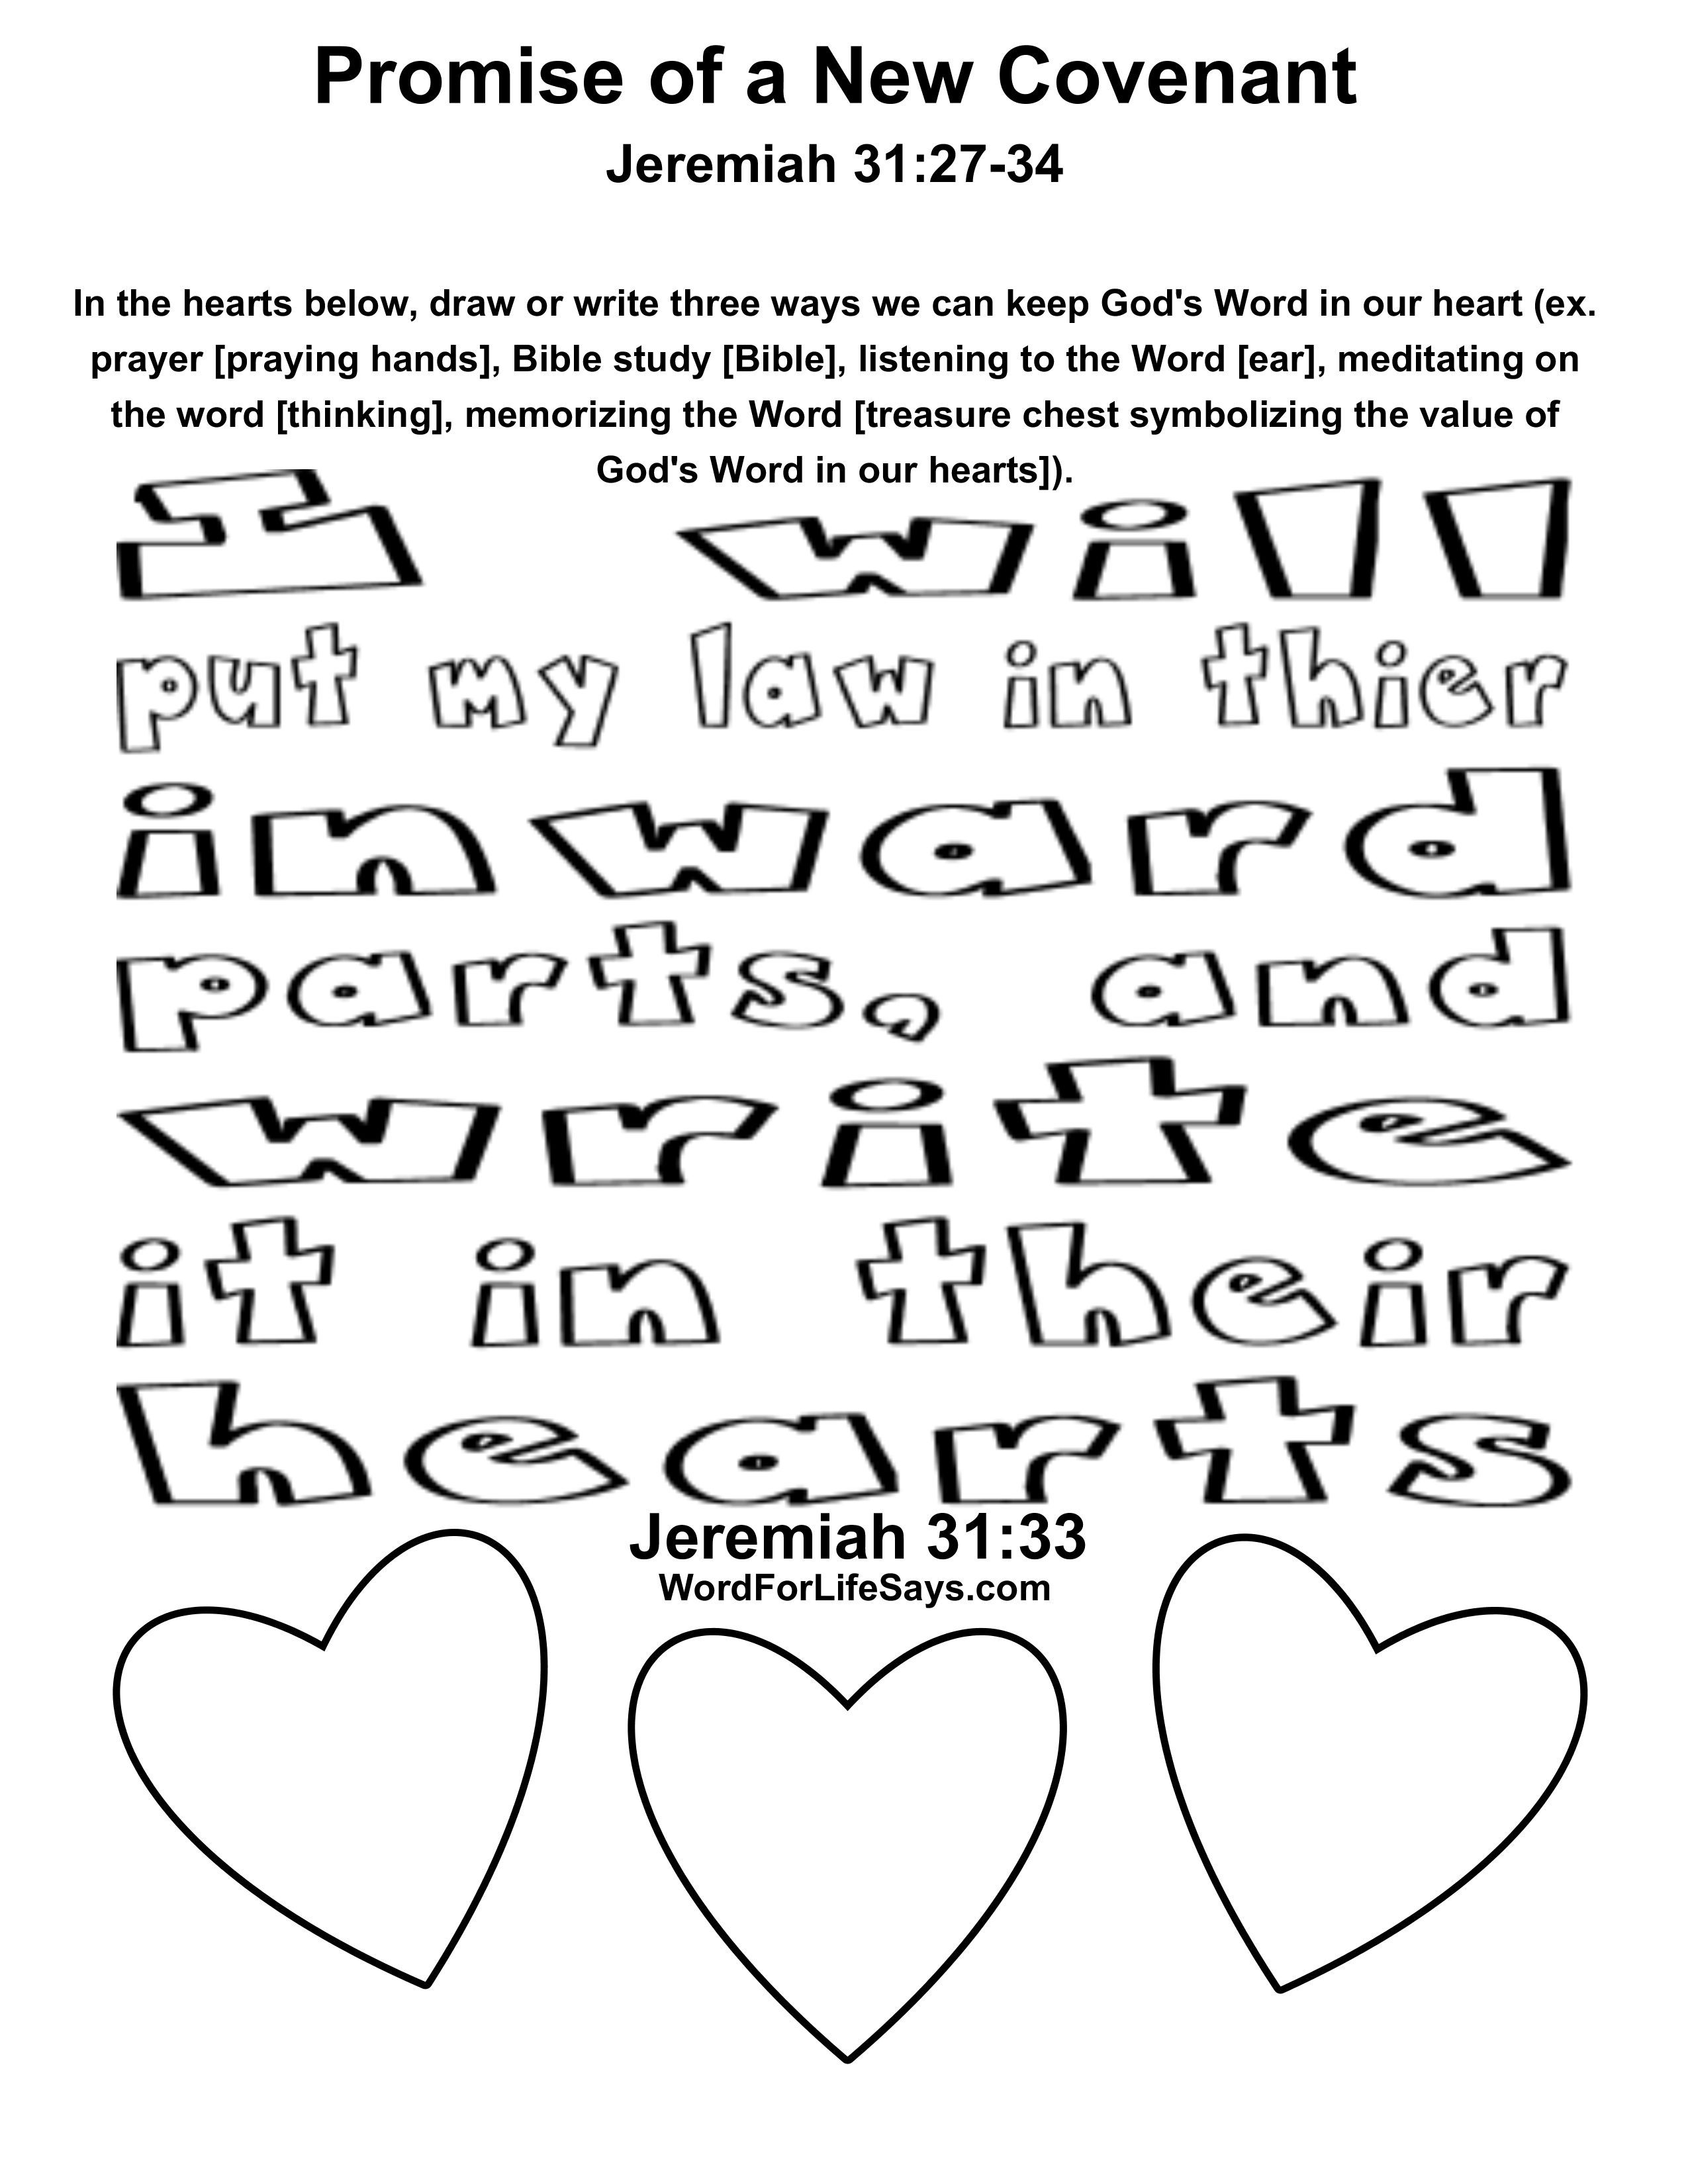 Promise Of A New Covenant Activity Sheet 001 Jpg 2550 3300